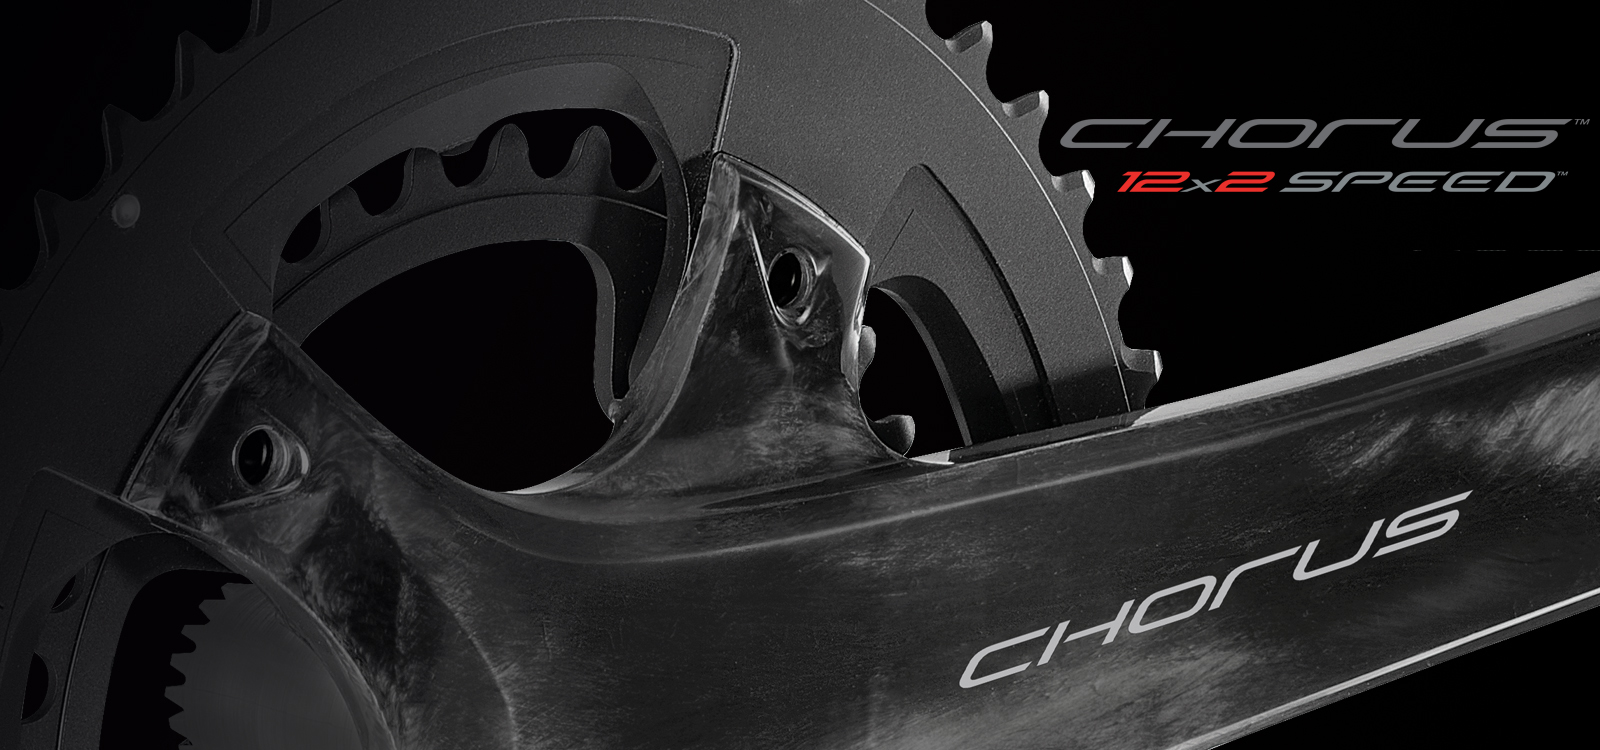 Chorus 12x2 Speed Disc Brake